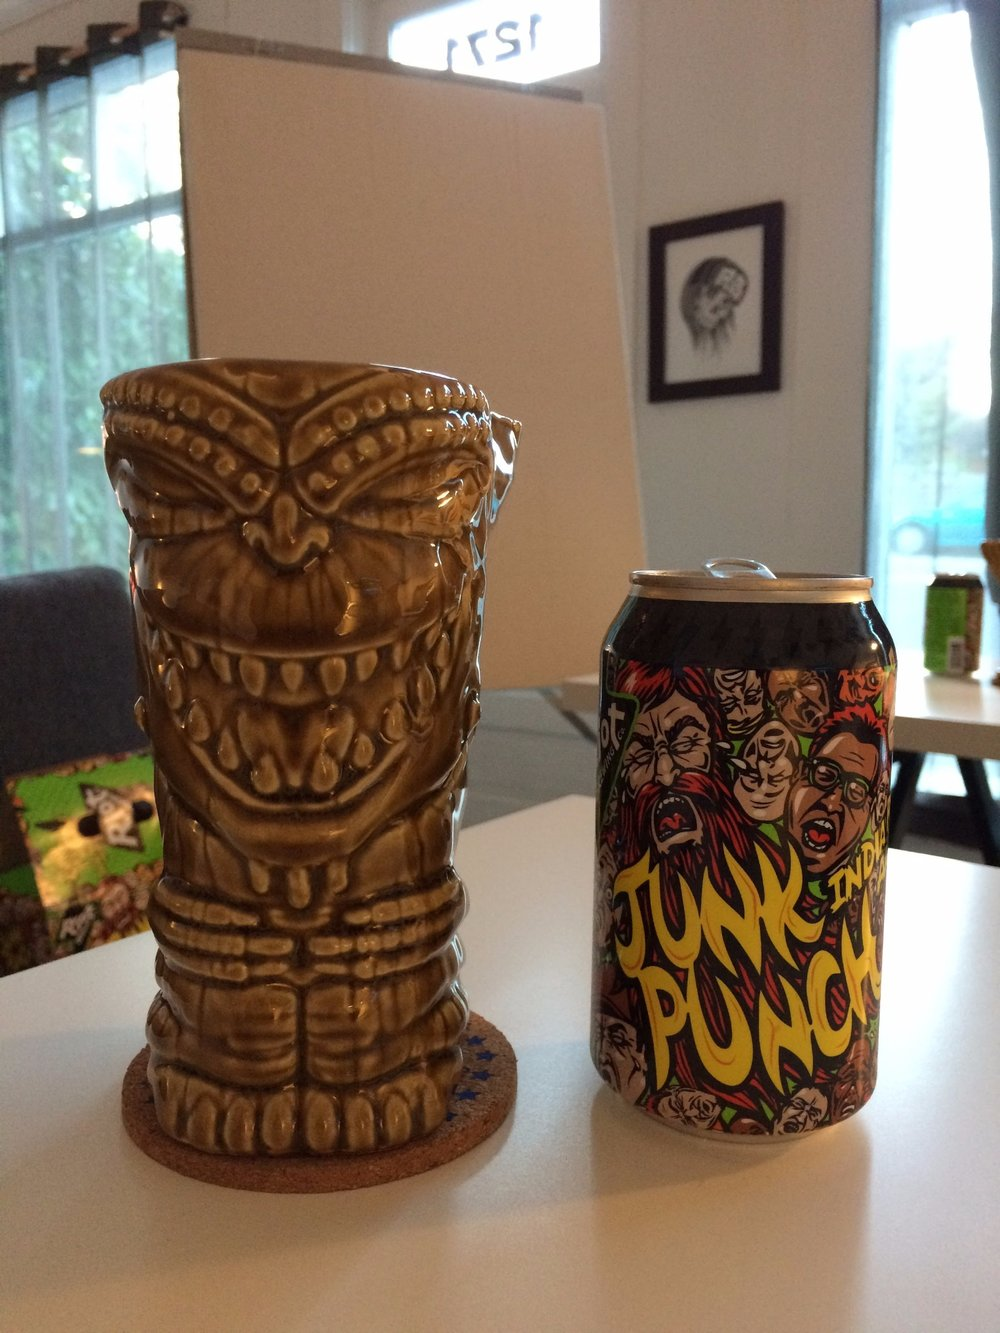 Tiki mug seen with a can of Junk Punch